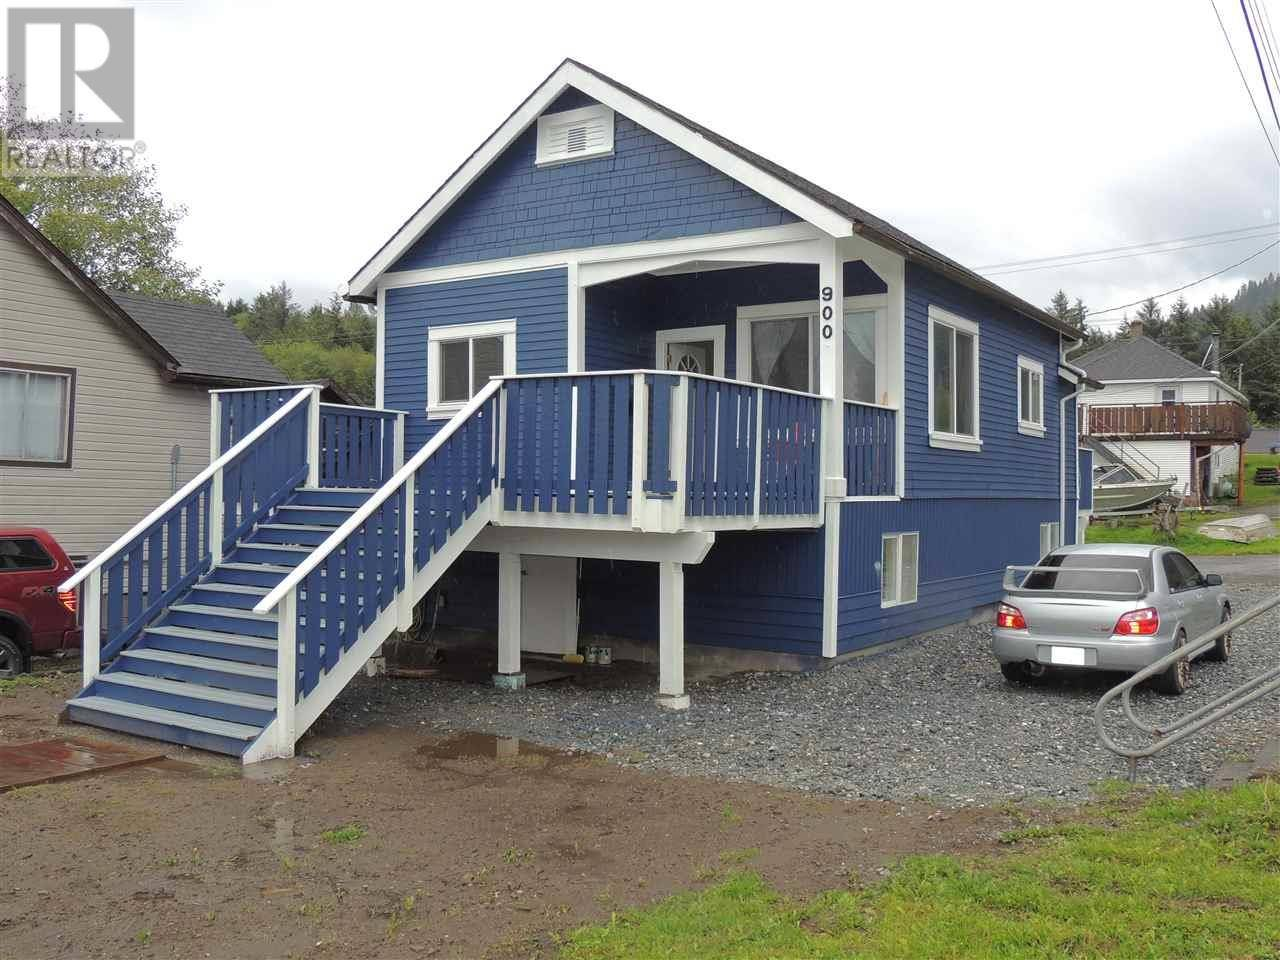 House for sale at 900 10th Ave E Prince Rupert British Columbia - MLS: R2398680